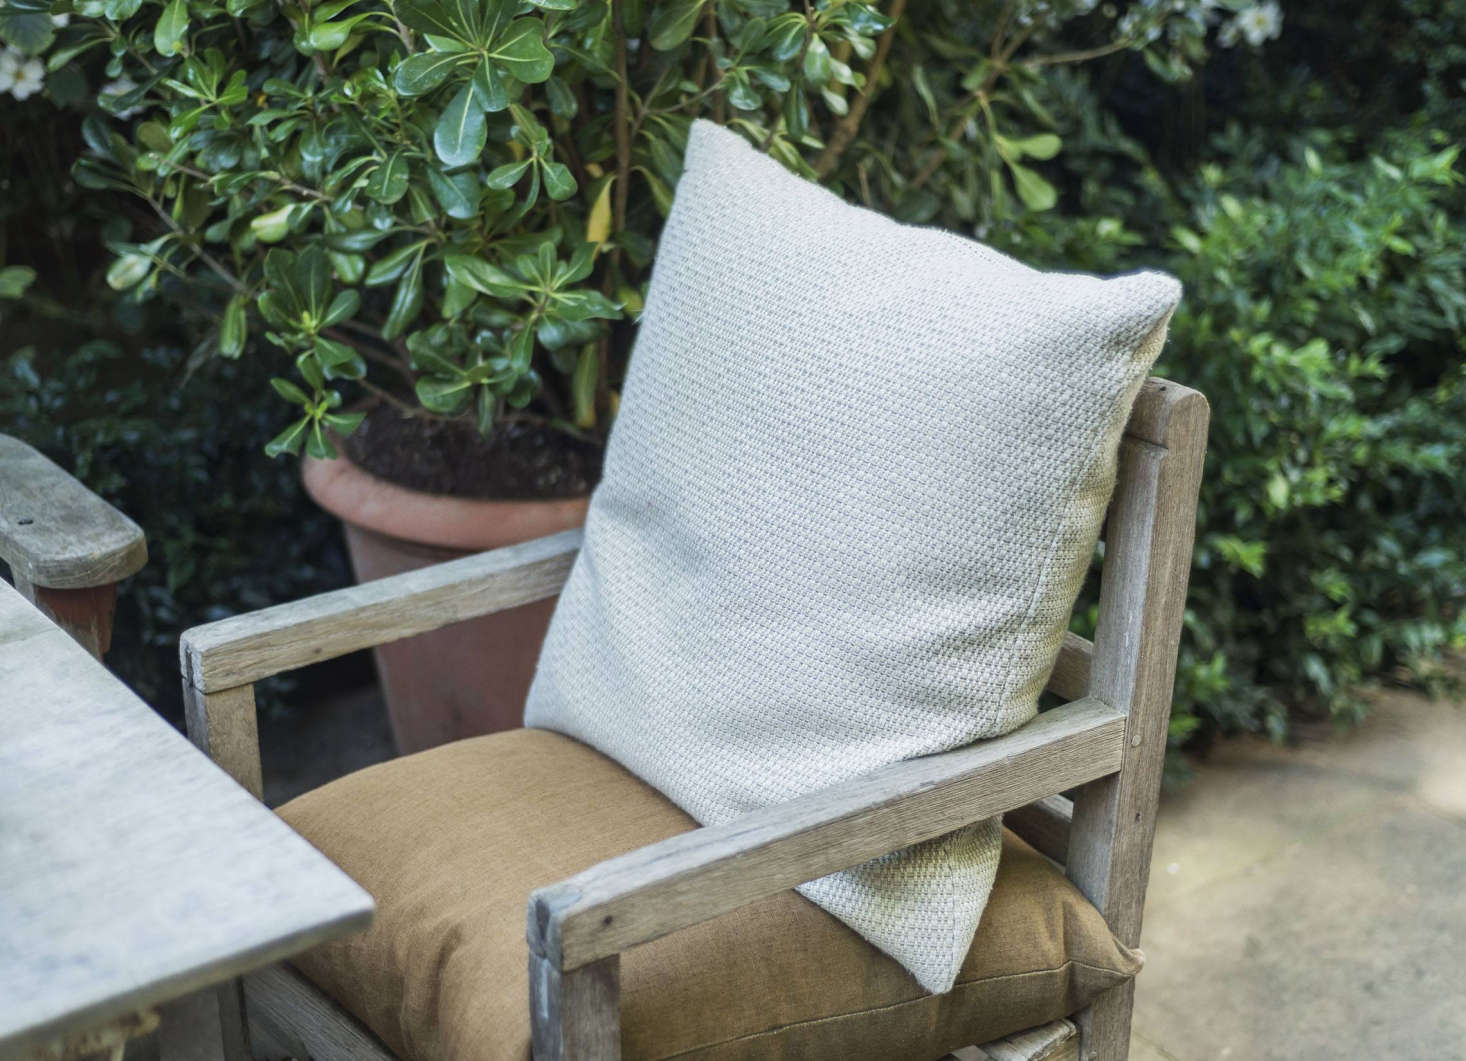 Weathered teak chairs and benches have cushions for extra comfort.